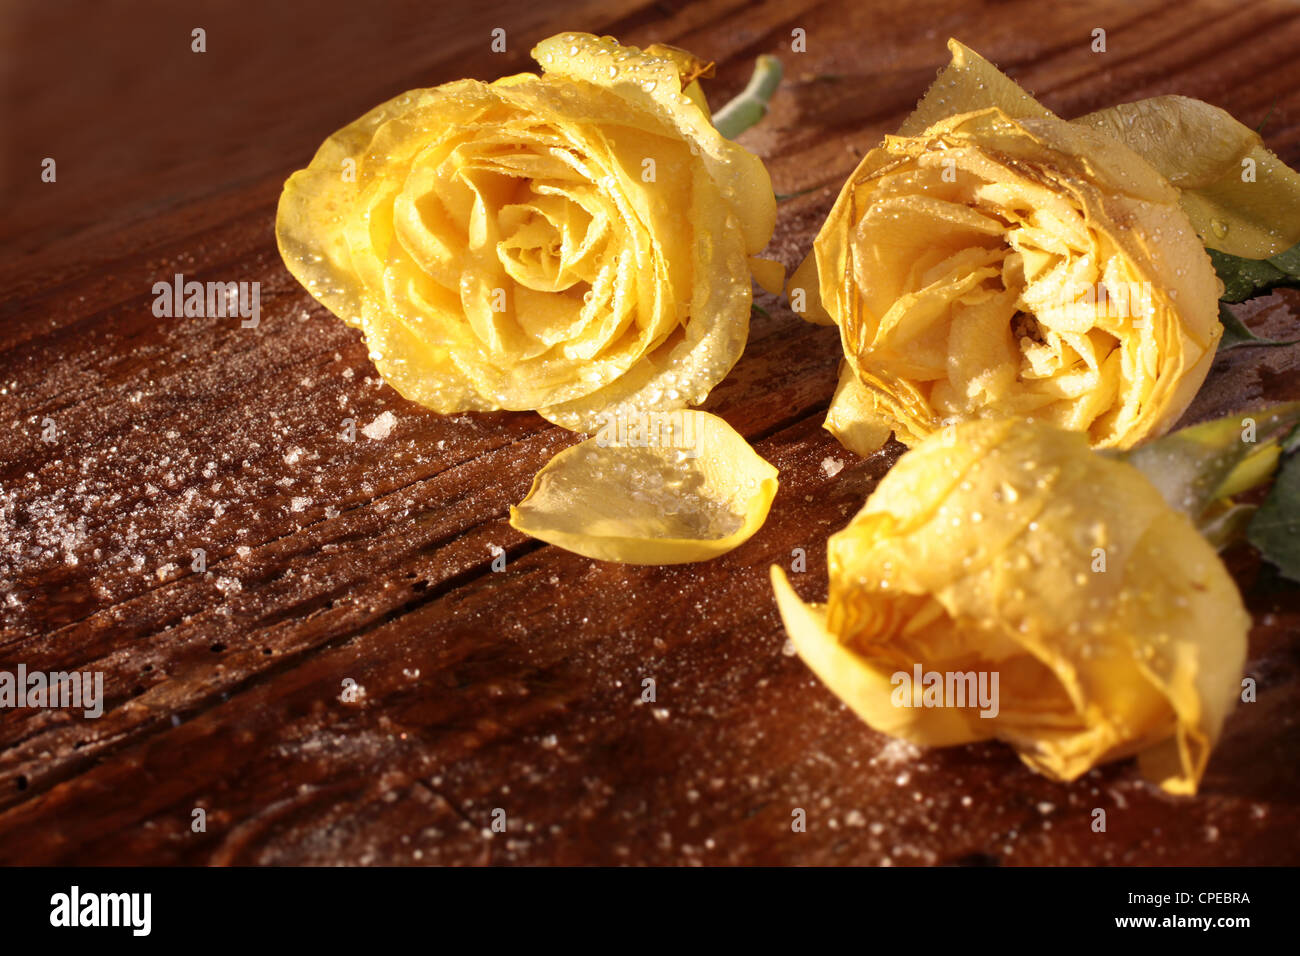 Frozen yellow roses on a rustic wooden table - Stock Image